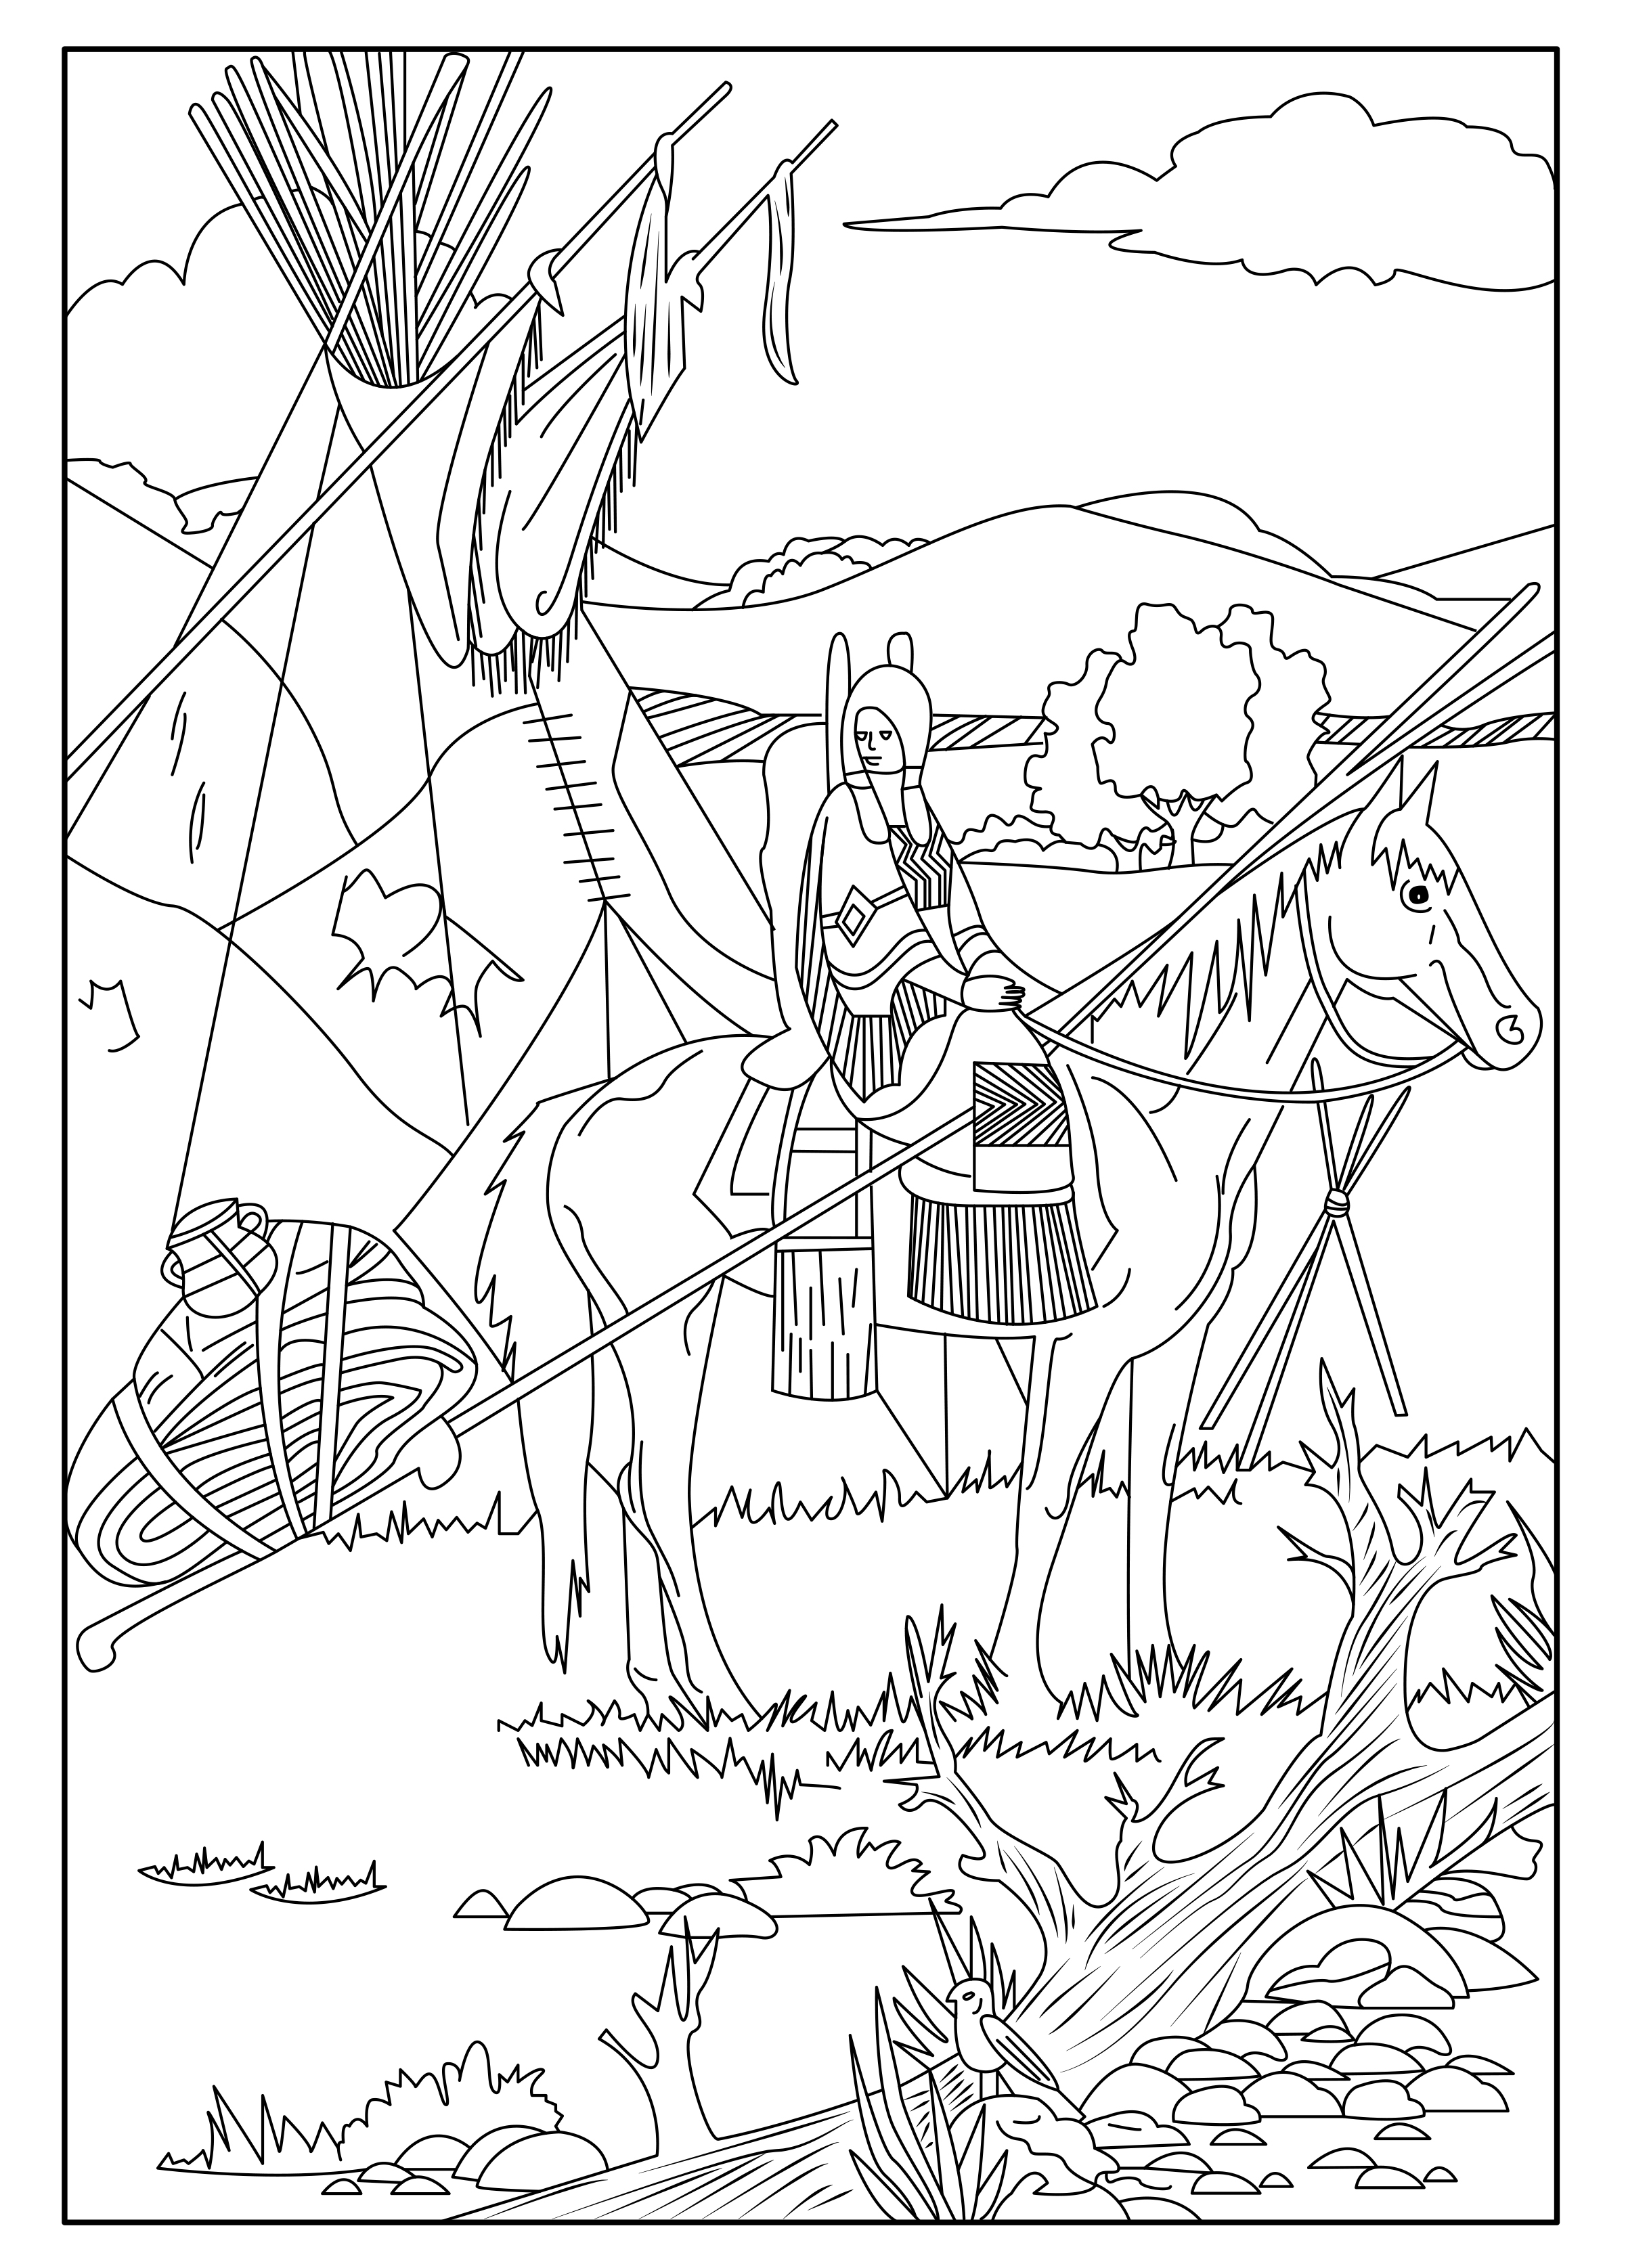 This coloring page show a Native American on his horse.